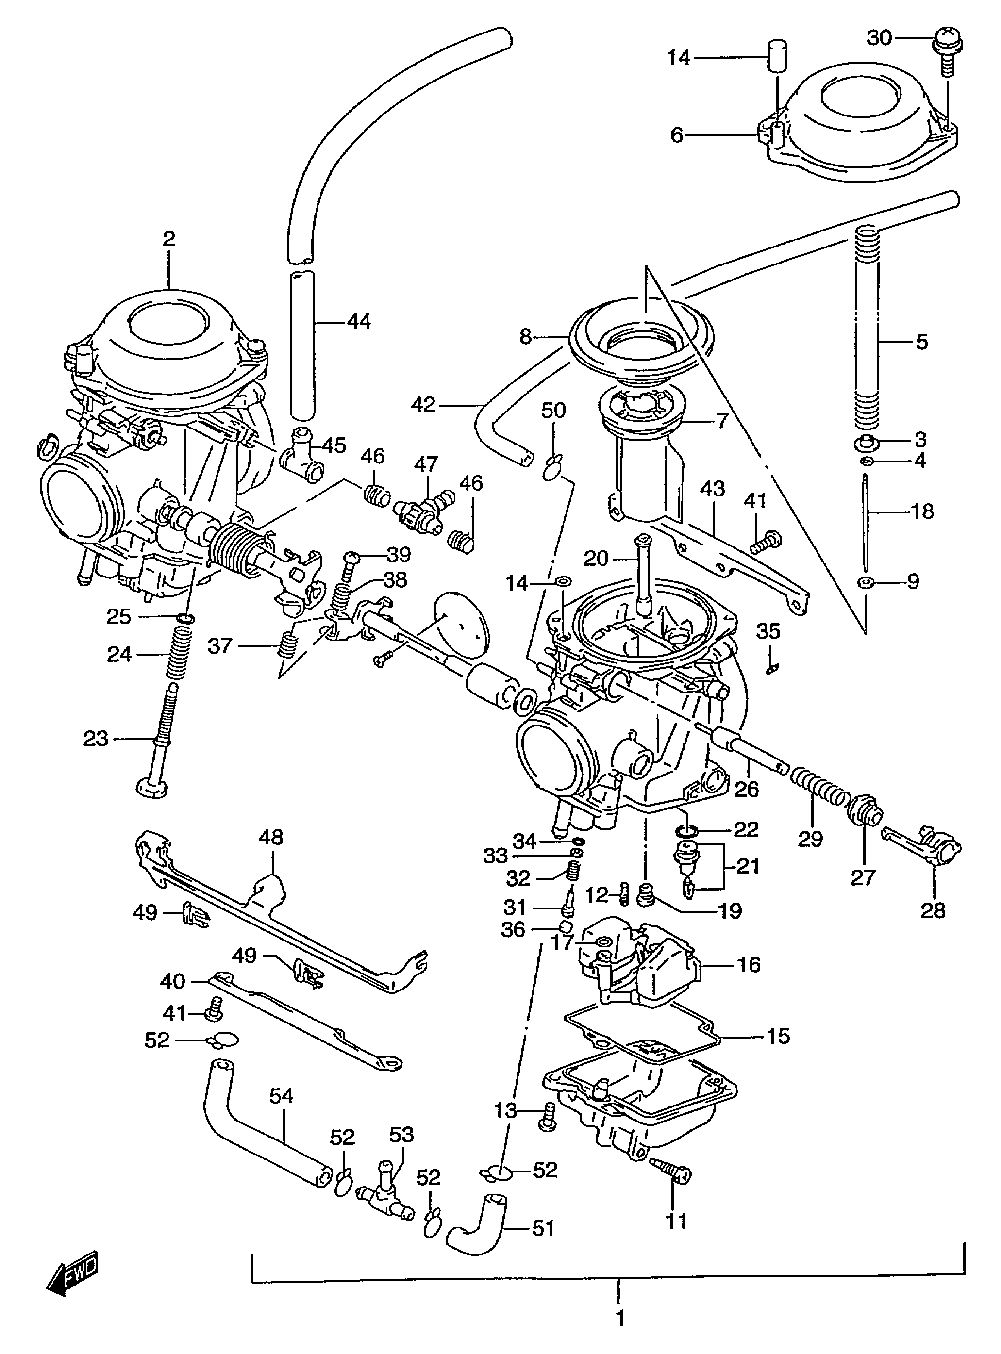 1995 Chevy Blazer Fuel System Diagram, 1995, Free Engine